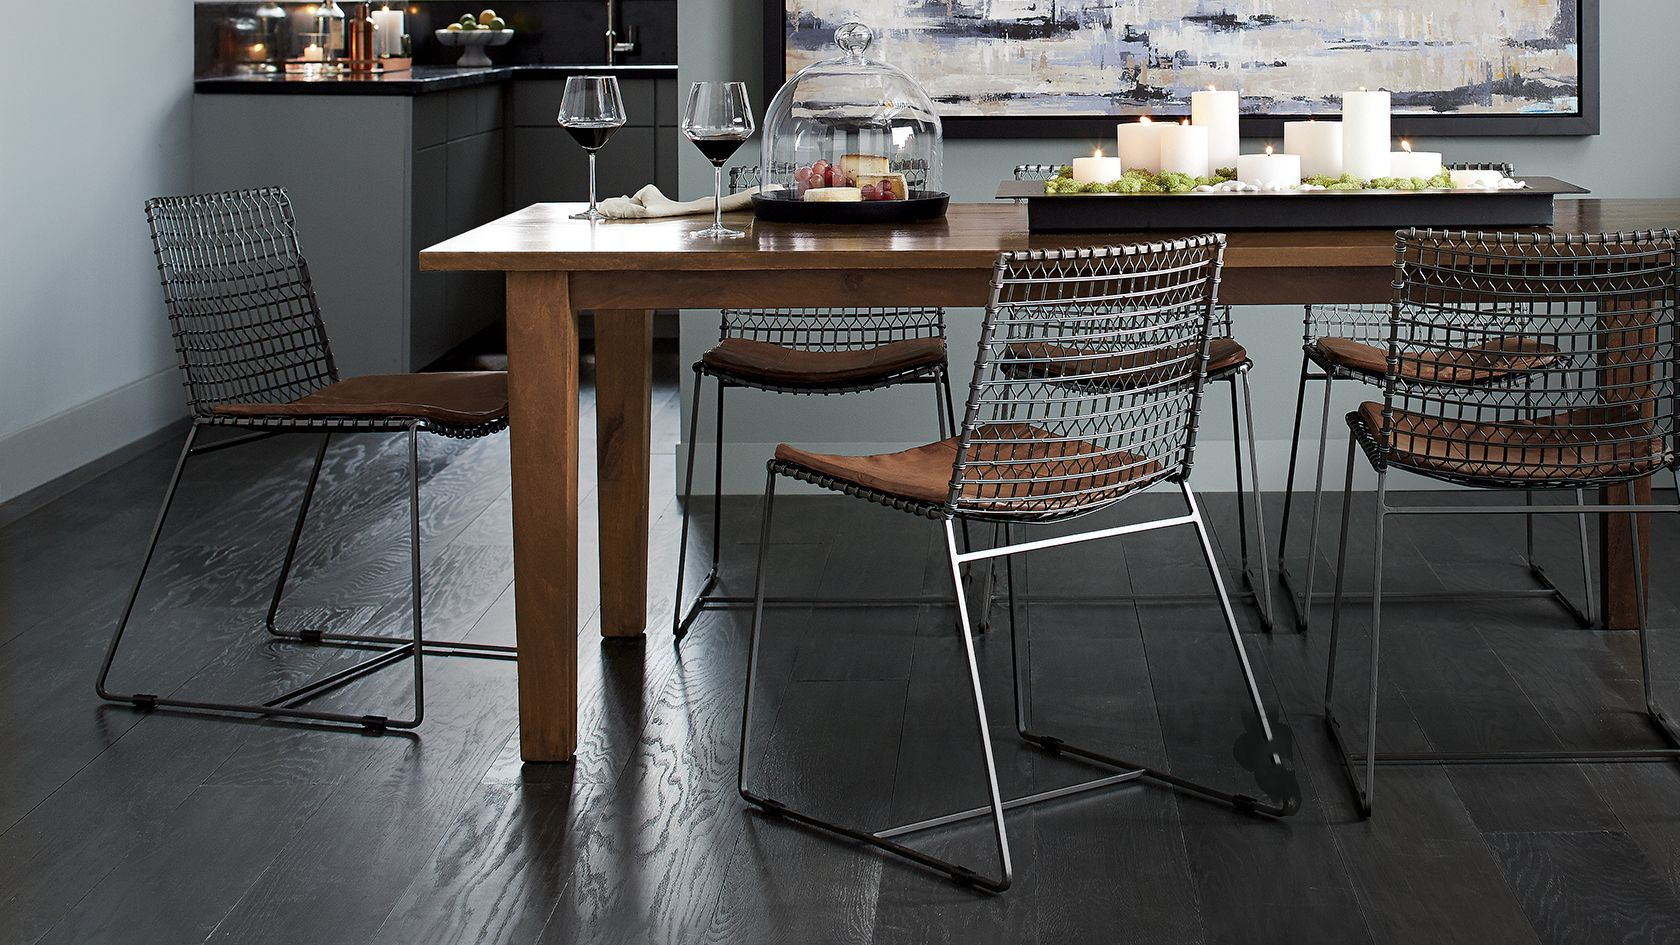 Room Inspiration & Home Decorating Ideas   Crate and Barrel